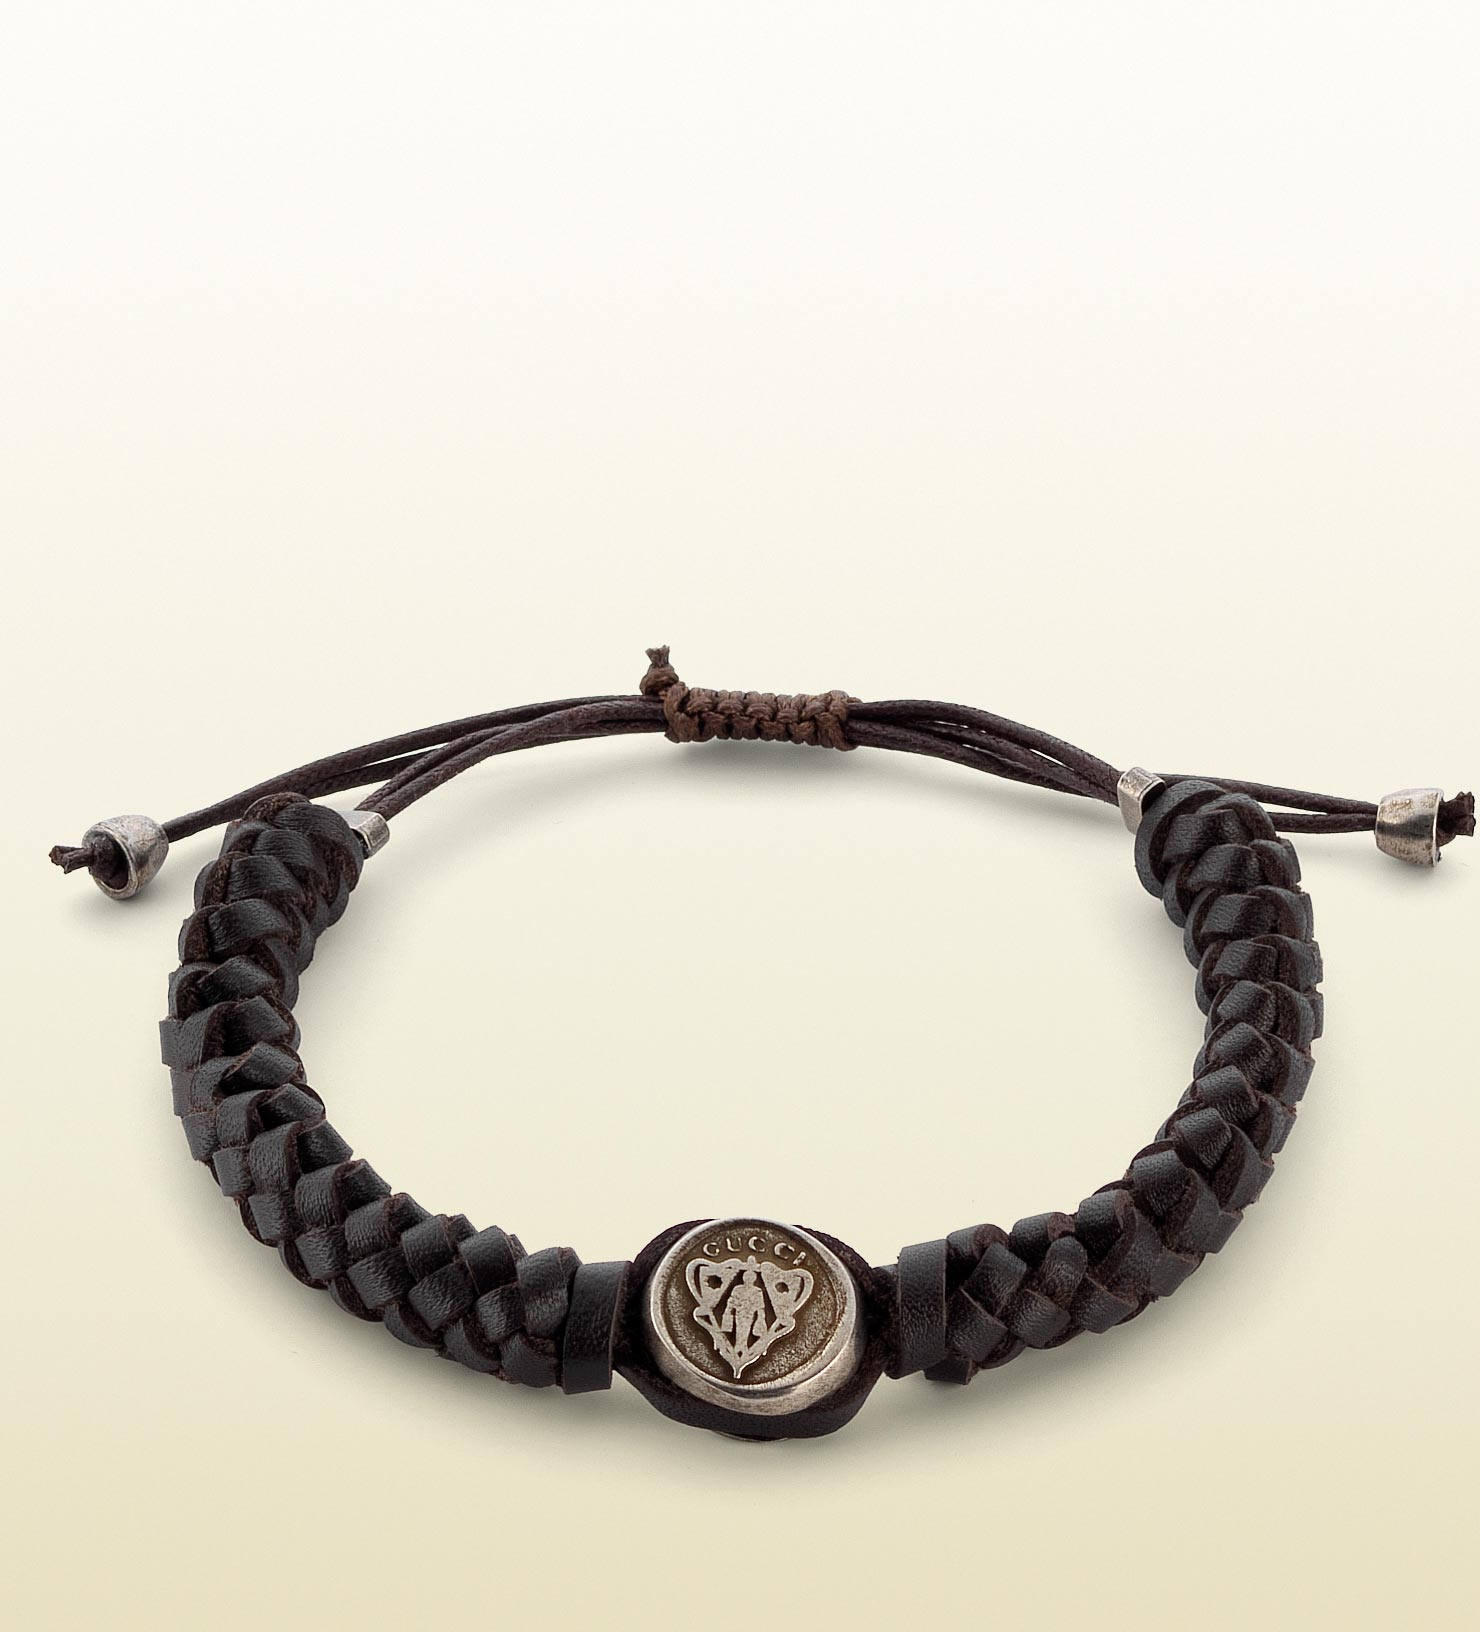 gucci woven leather bracelet with gucci crest tag in brown